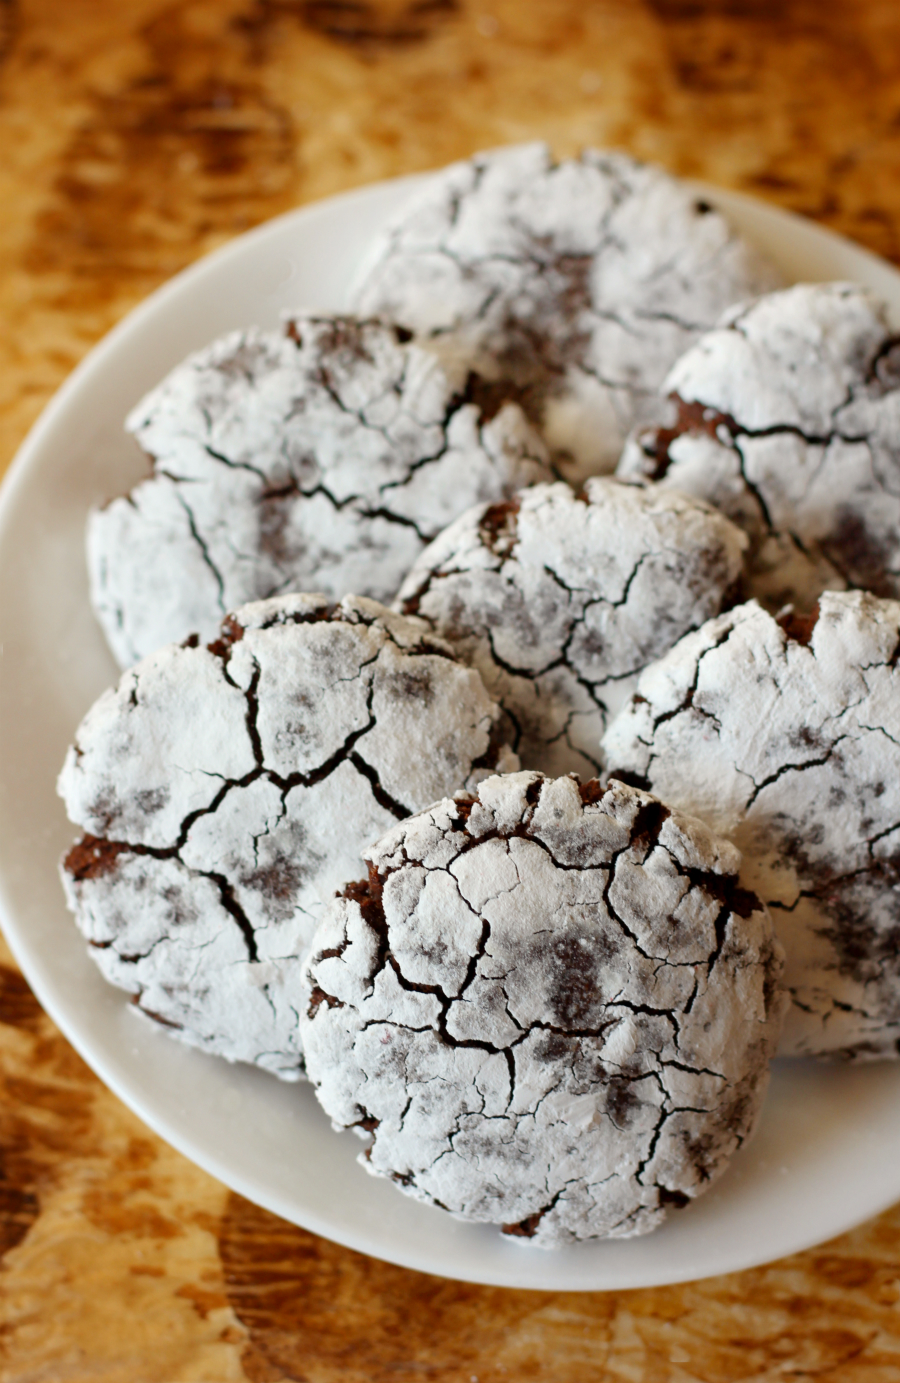 Chocolate Peppermint Crinkle Cookies | Strength and Sunshine @RebeccaGF666 A minty twist on the holiday crinkle cookie! Christmas won't be the same with these Chocolate Peppermint Crinkle Cookies! Gluten-free, vegan, and allergy-free, a perfect dessert recipe for kids, adults, and Santa too!